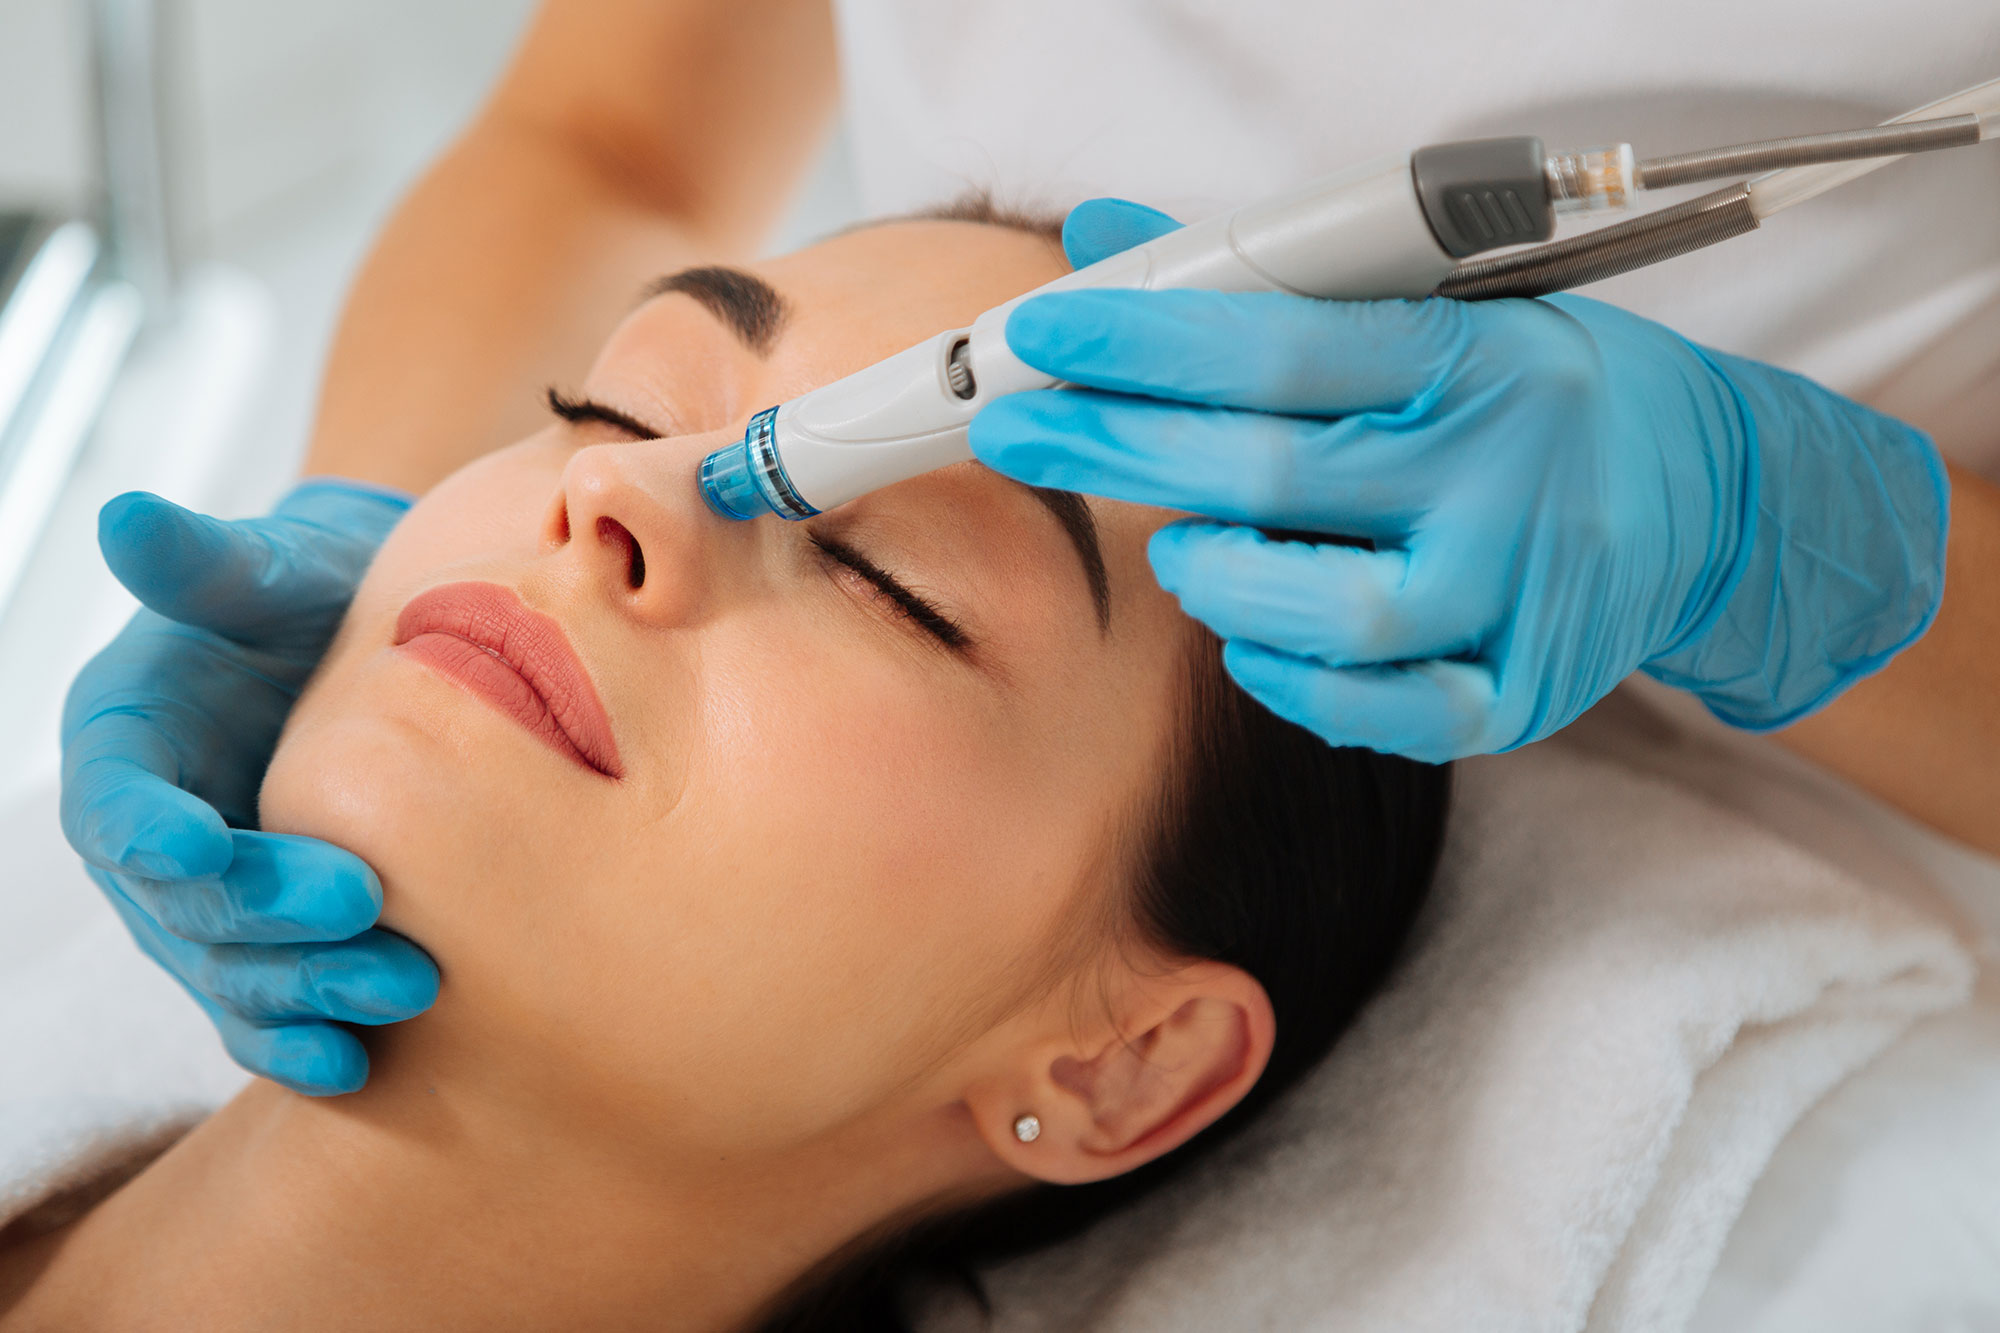 Hydrafacial and its Benefits for Your Skin